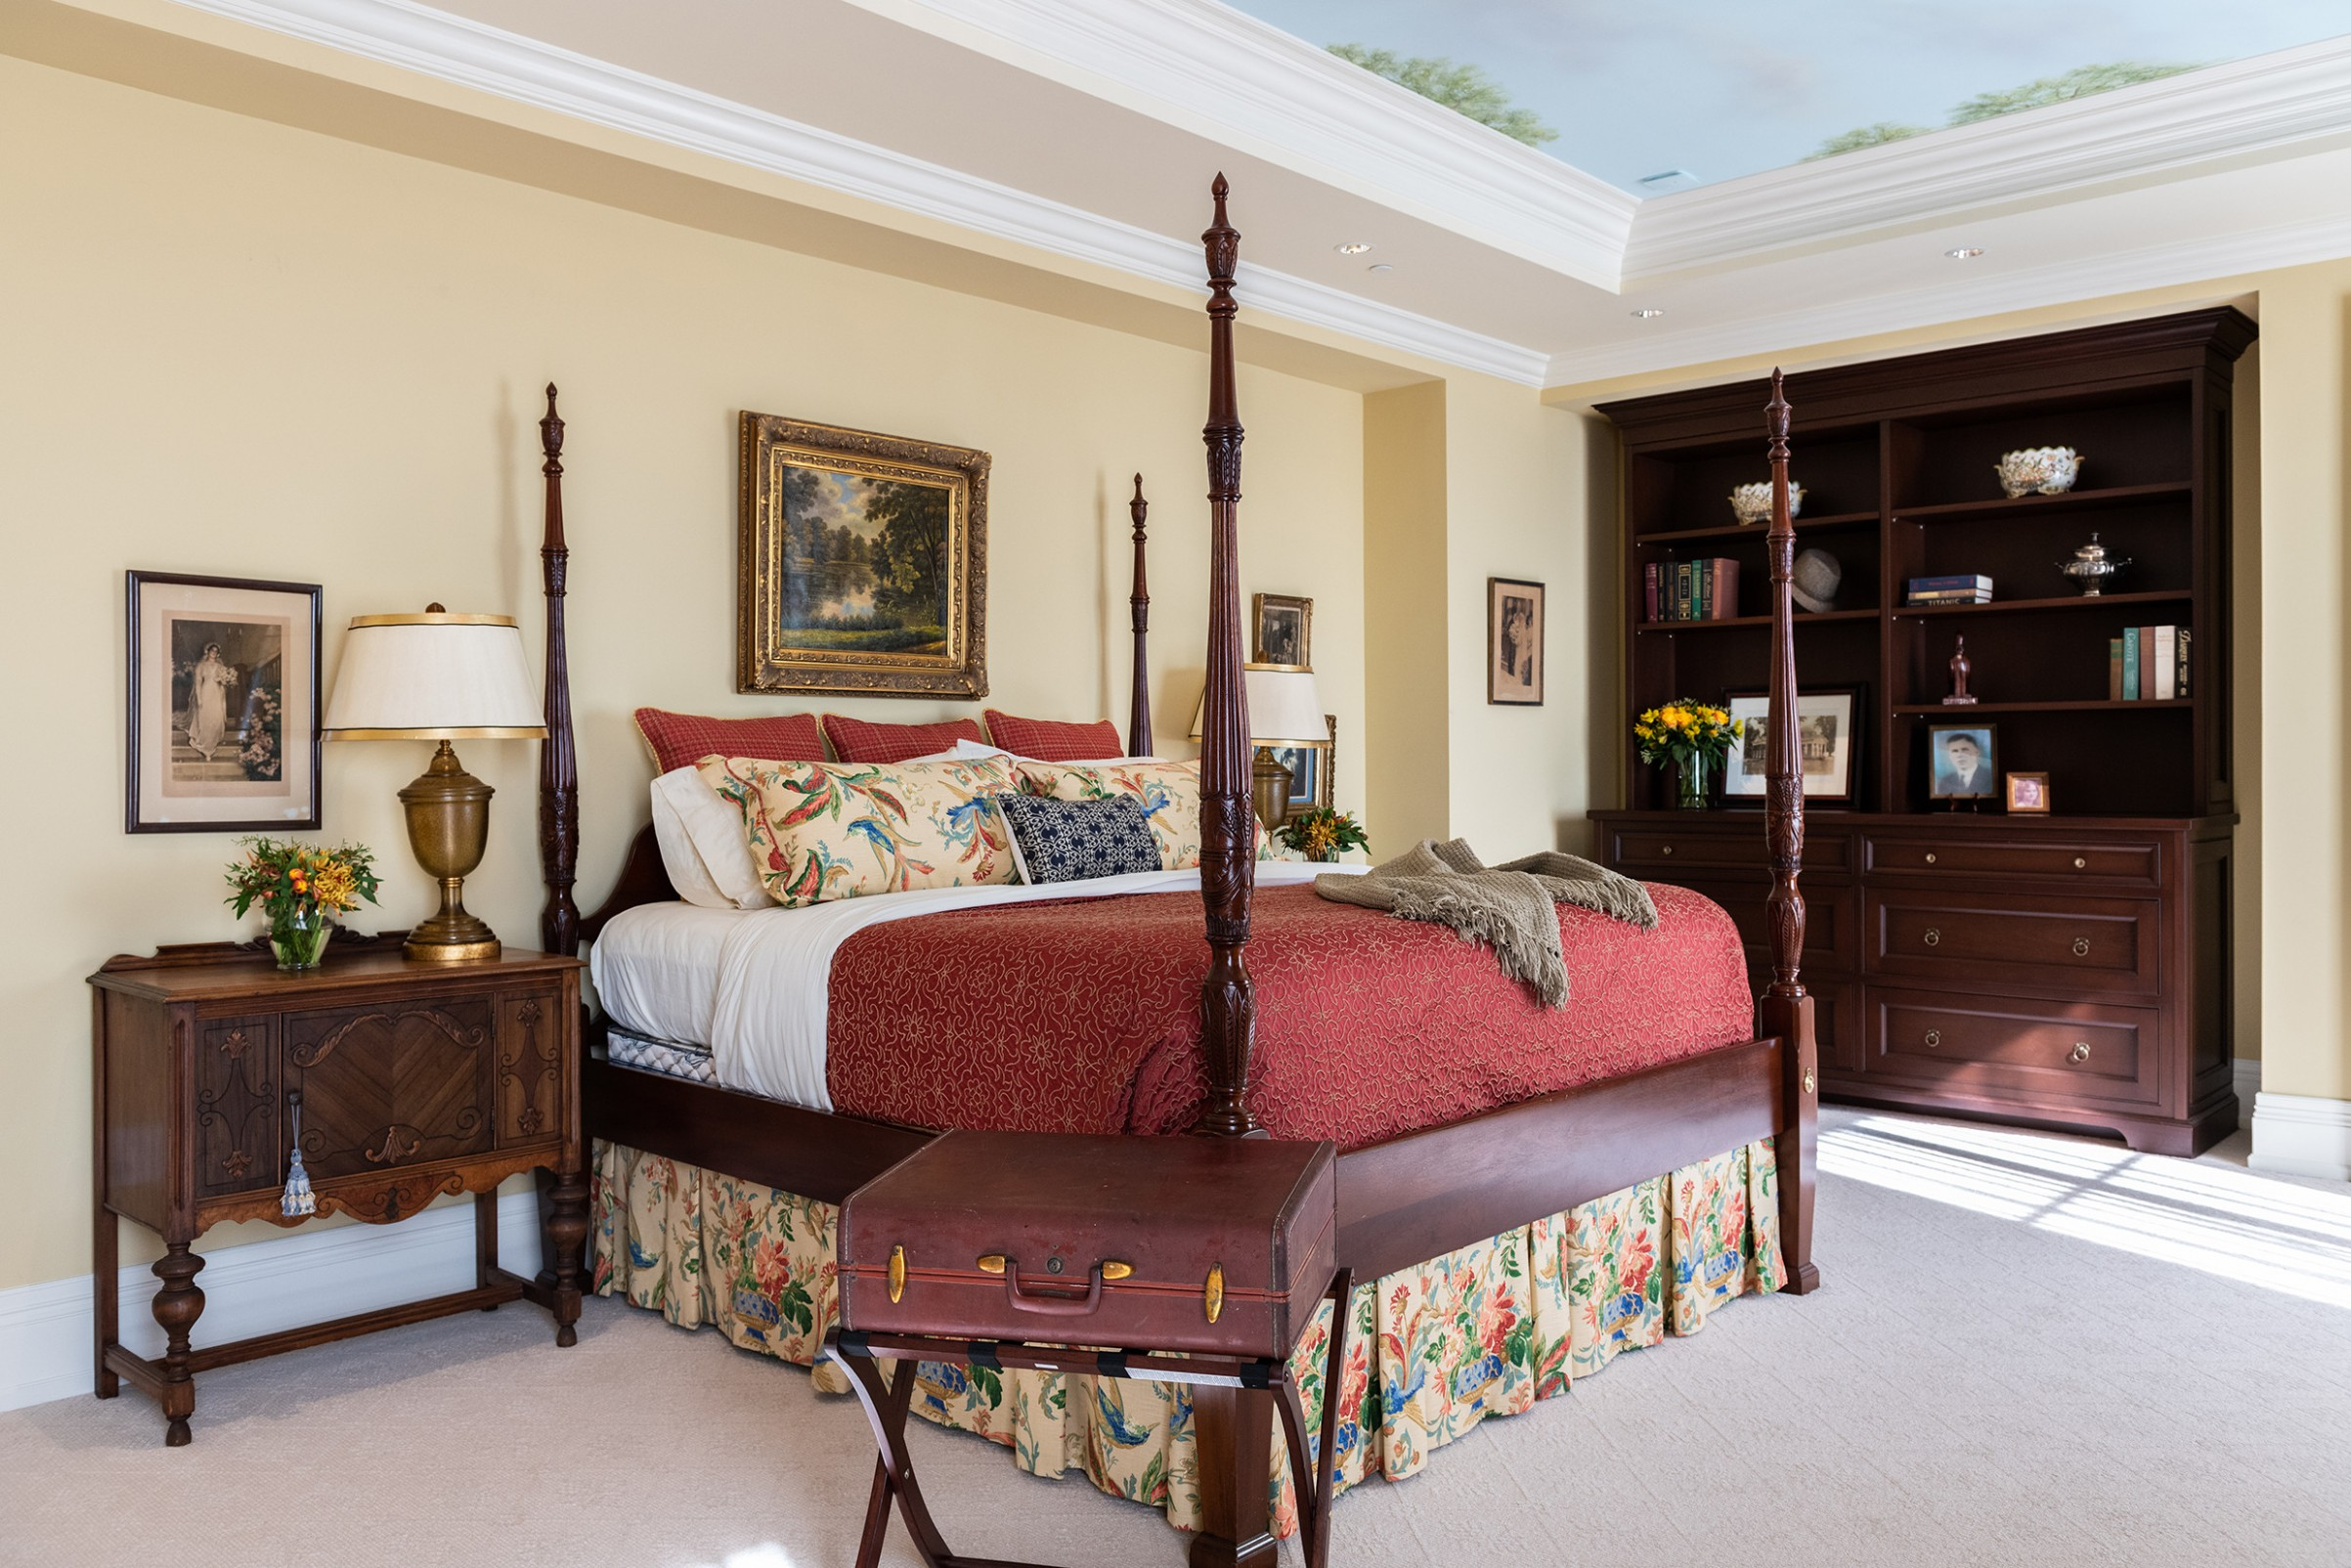 Must See Master Bedroom Pictures & Ideas Before You Renovate  - Bedroom Ideas Houzz